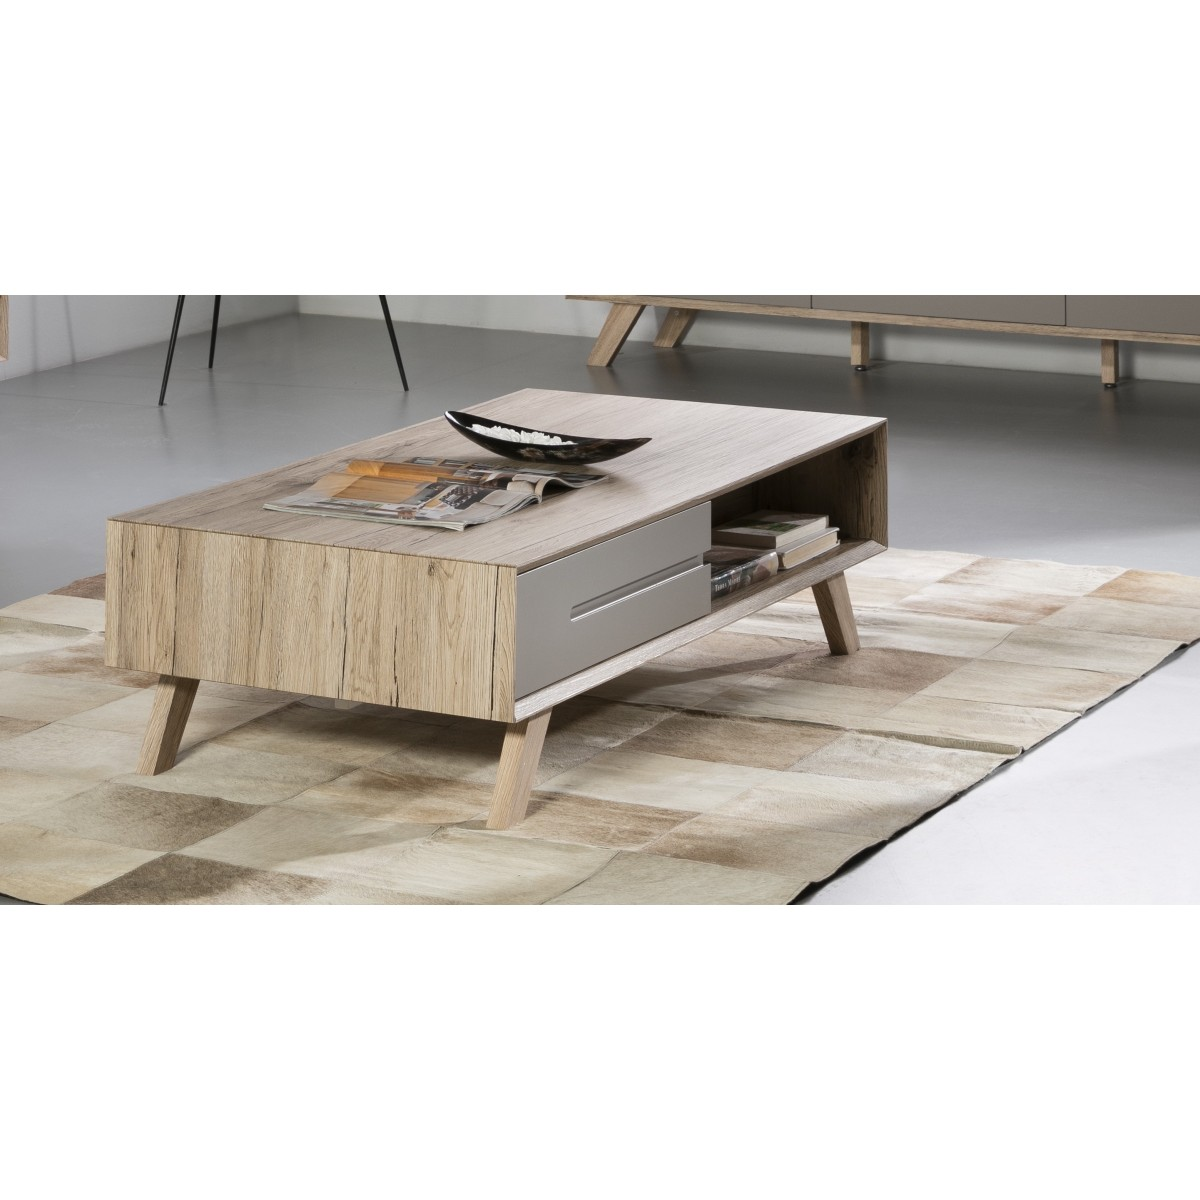 luxus table basse taupe id es de conception de table basse. Black Bedroom Furniture Sets. Home Design Ideas